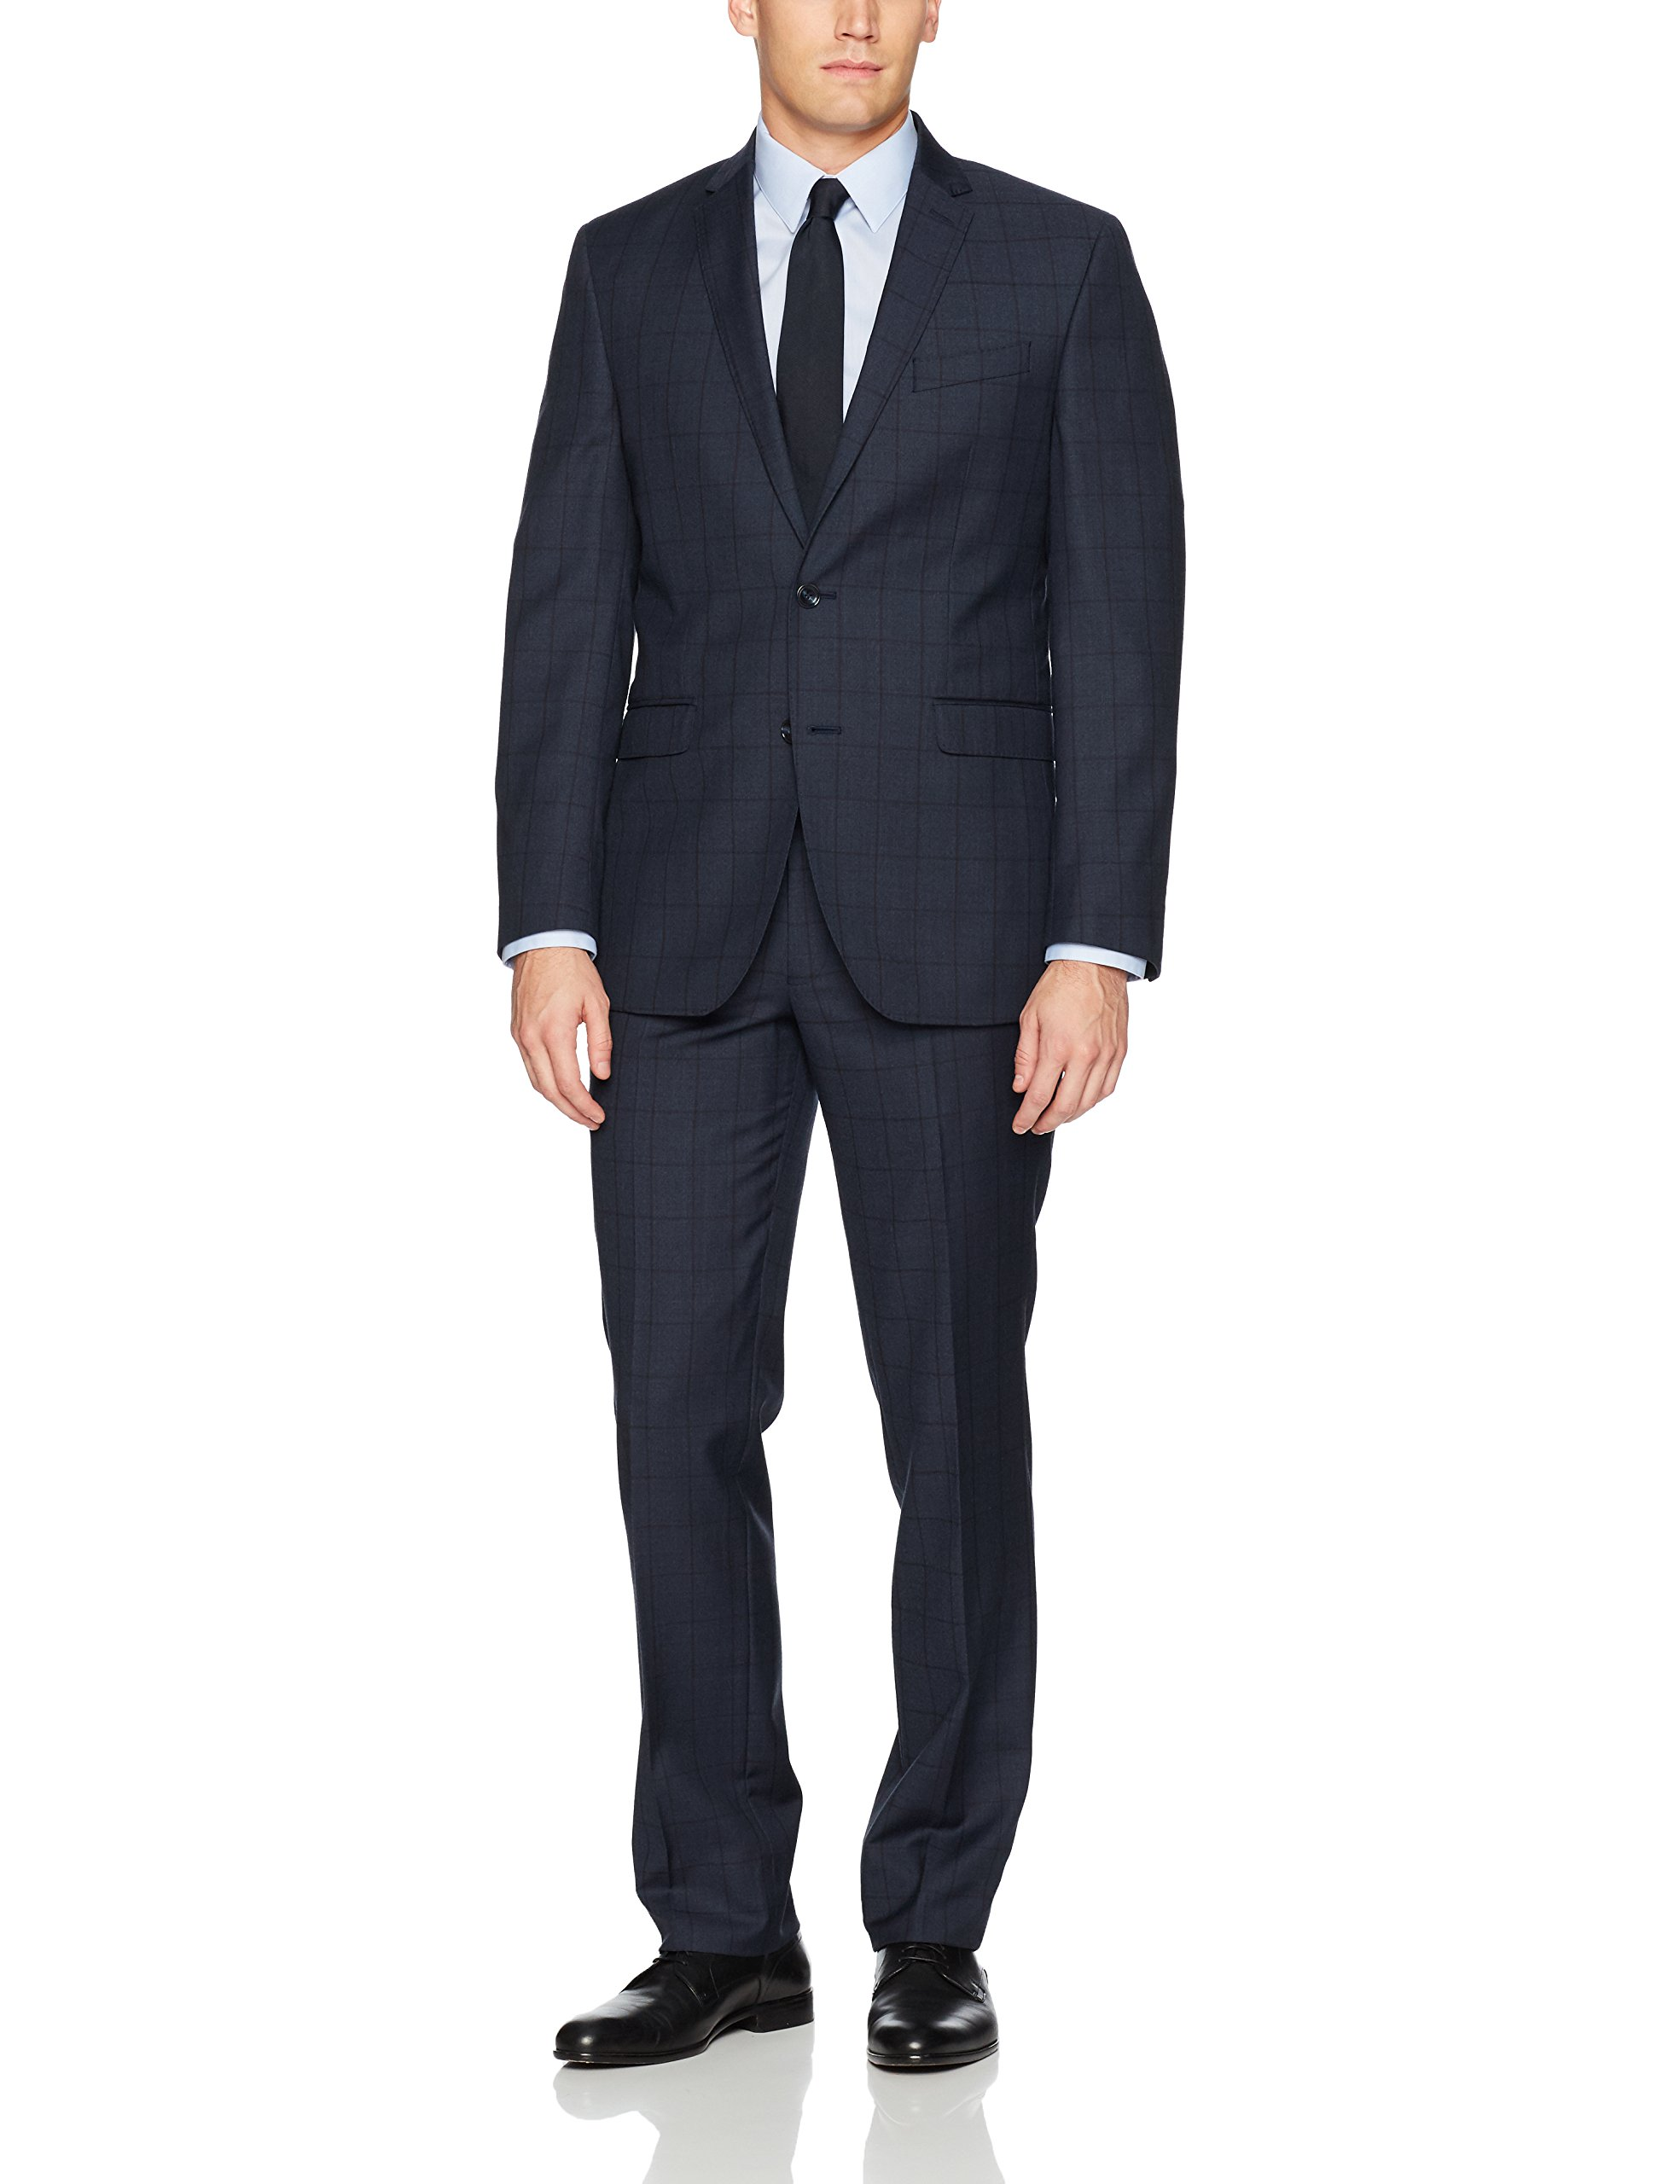 Kenneth Cole New York Men's Slim Fit 2 Button Suit with Side Vent, Navy Berry, 40 Long by Kenneth Cole New York